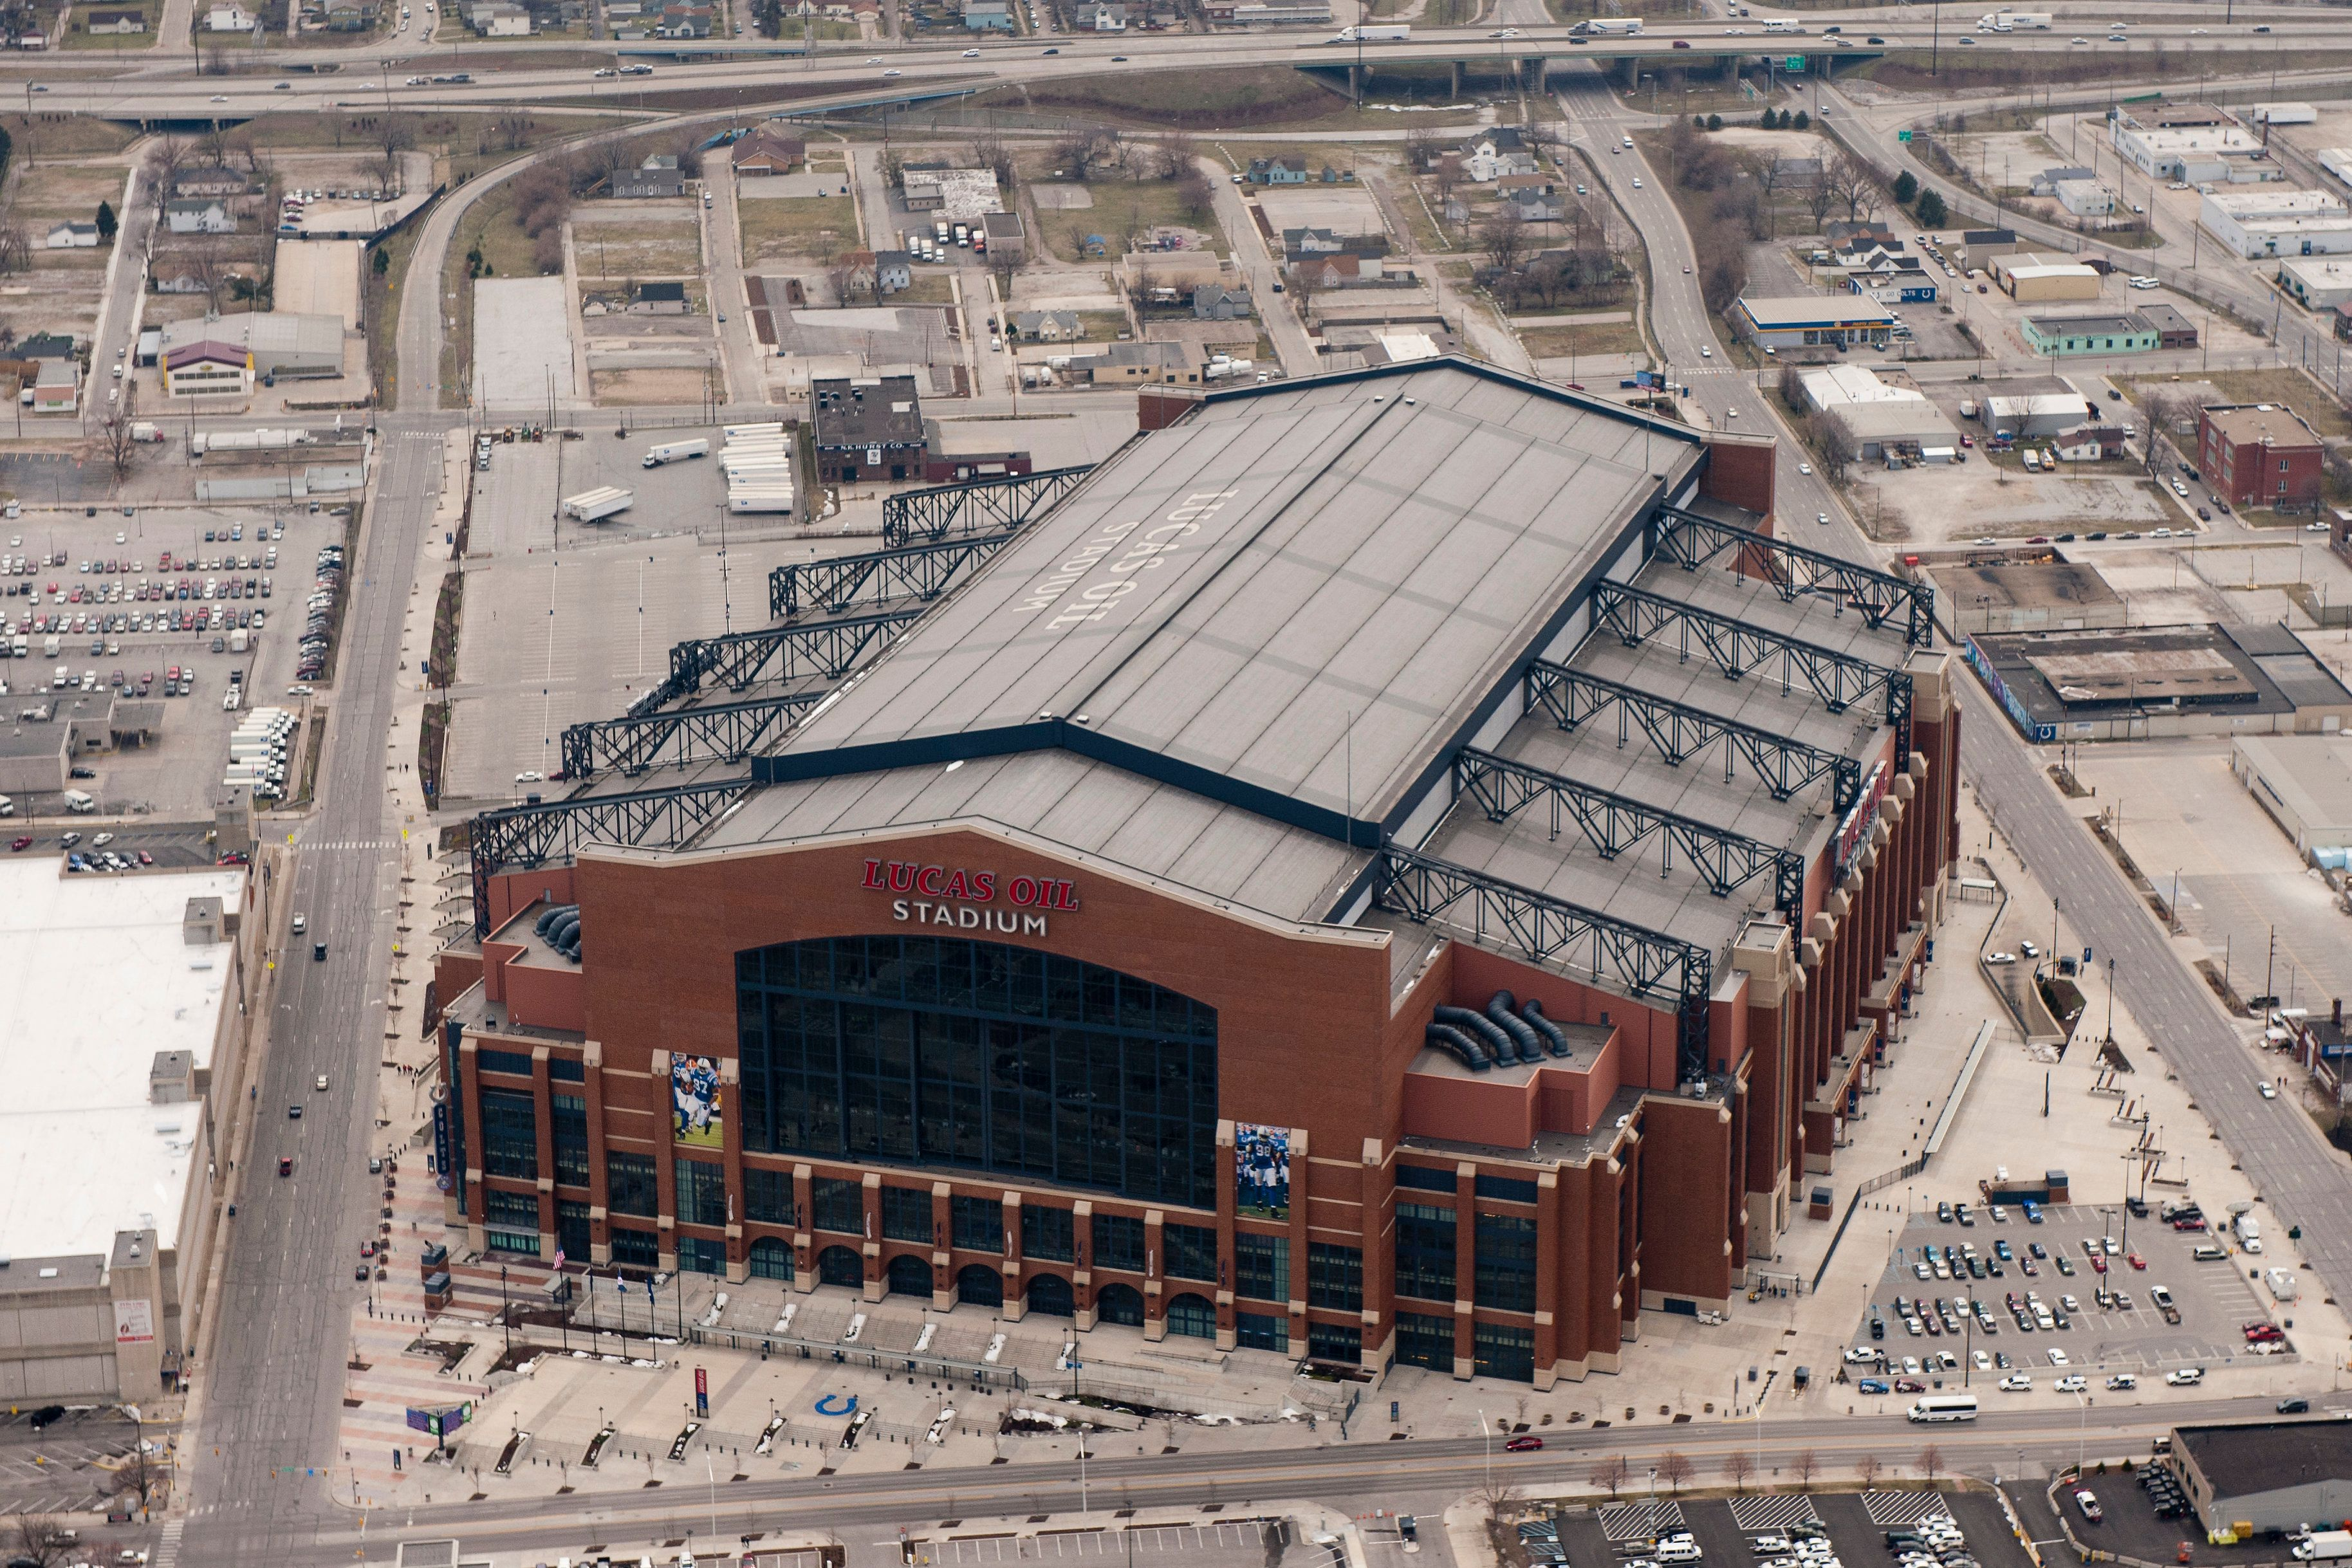 INDIANAPOLIS, IN - MARCH 30: An aerial view of Lucas Oil Stadium during the Midwest Regional round of the 2013 NCAA Men's Basketball Tournament on March 30, 2013 in Indianapolis, Indiana. (Photo by Lance King/Getty Images)